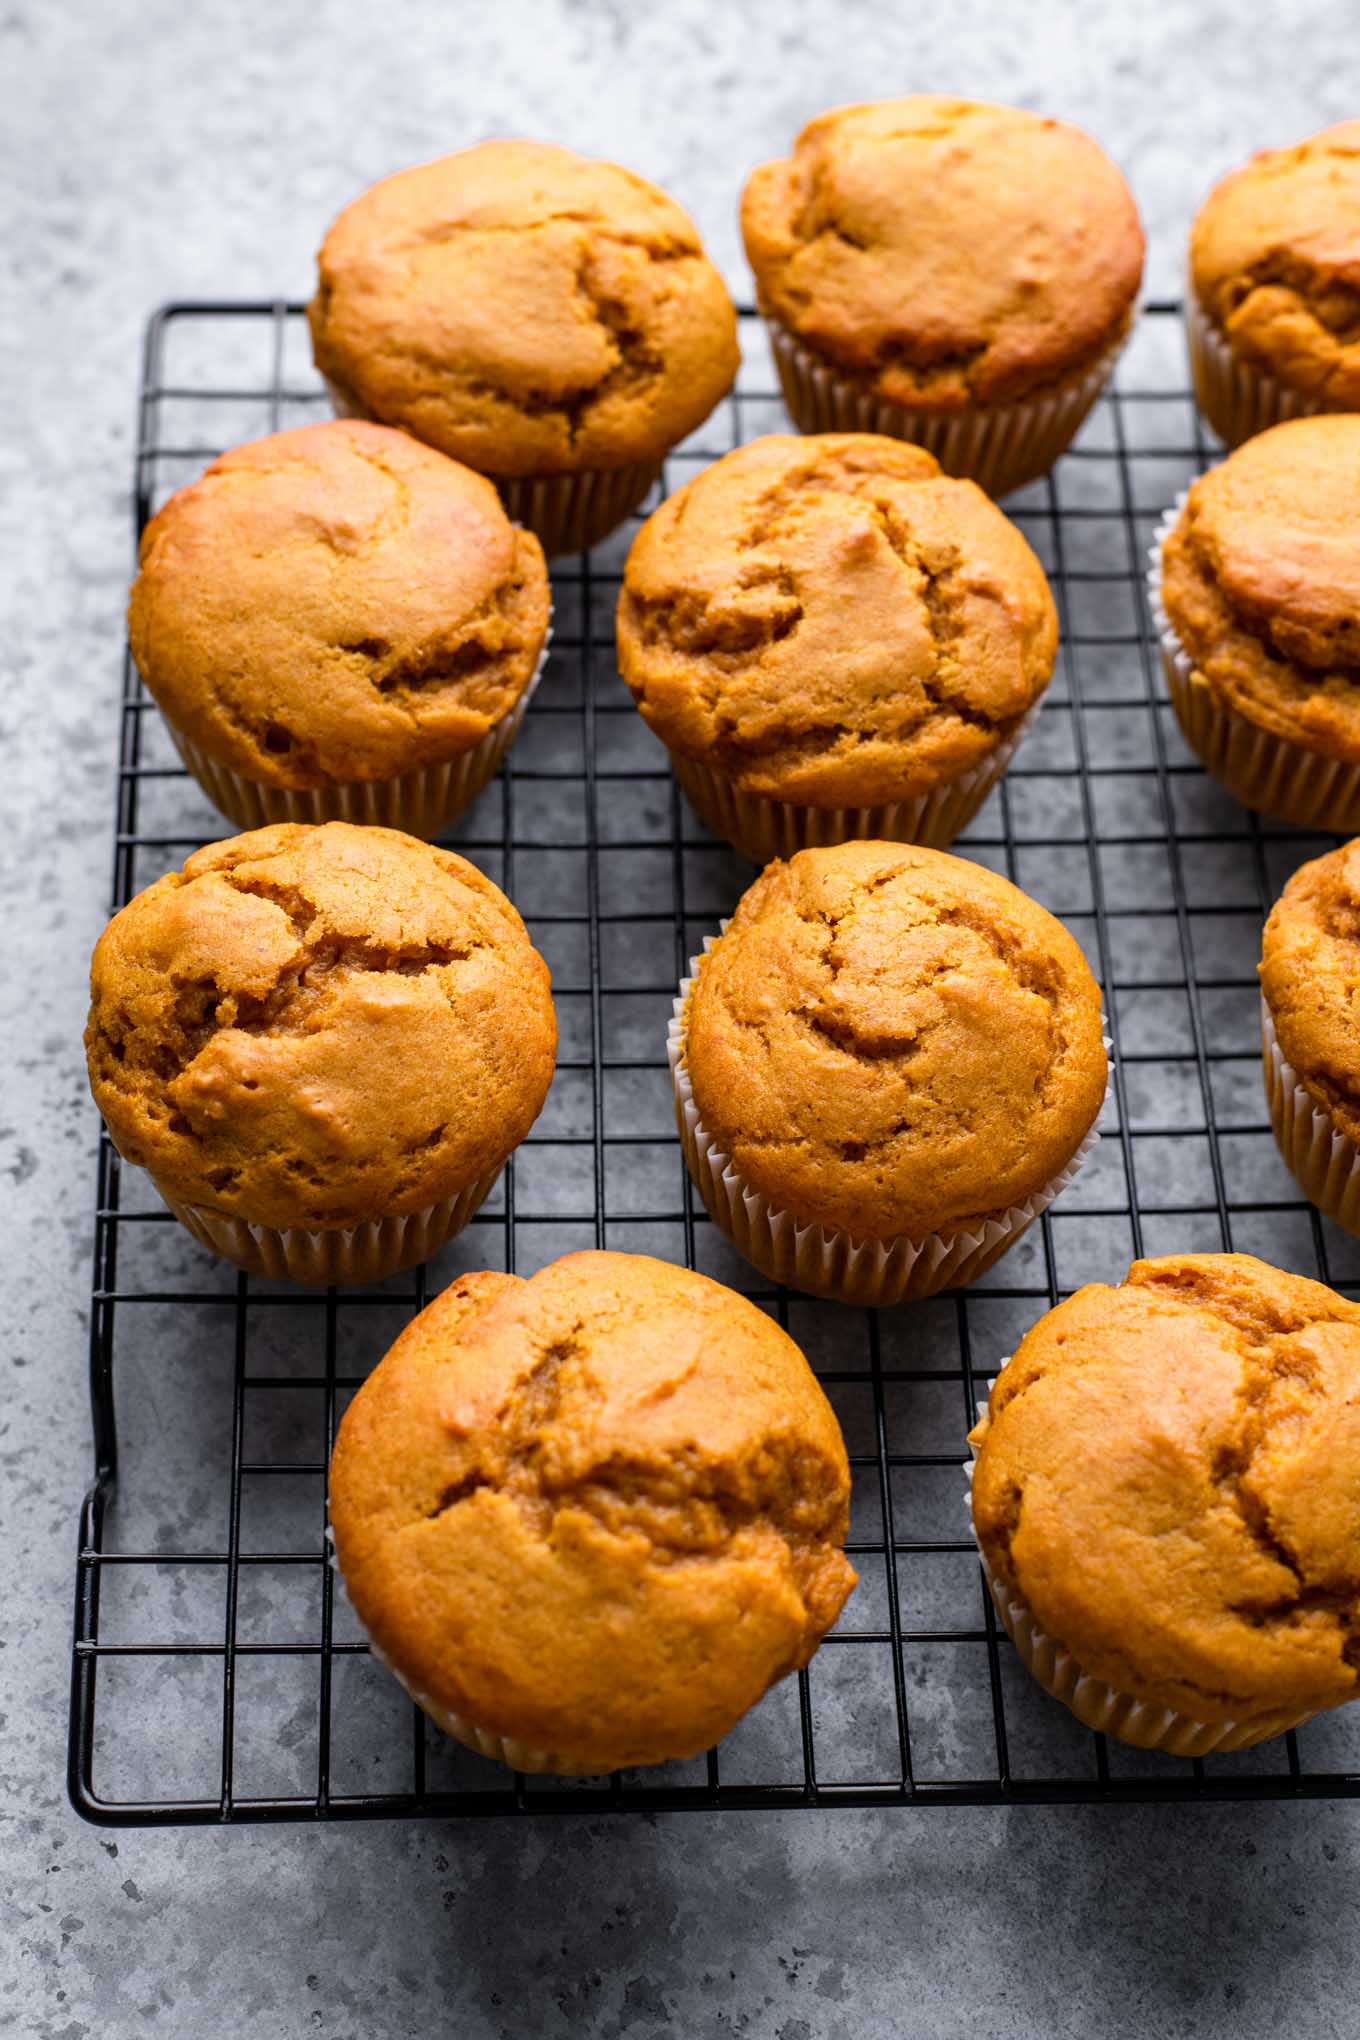 baked muffins on cooling rack